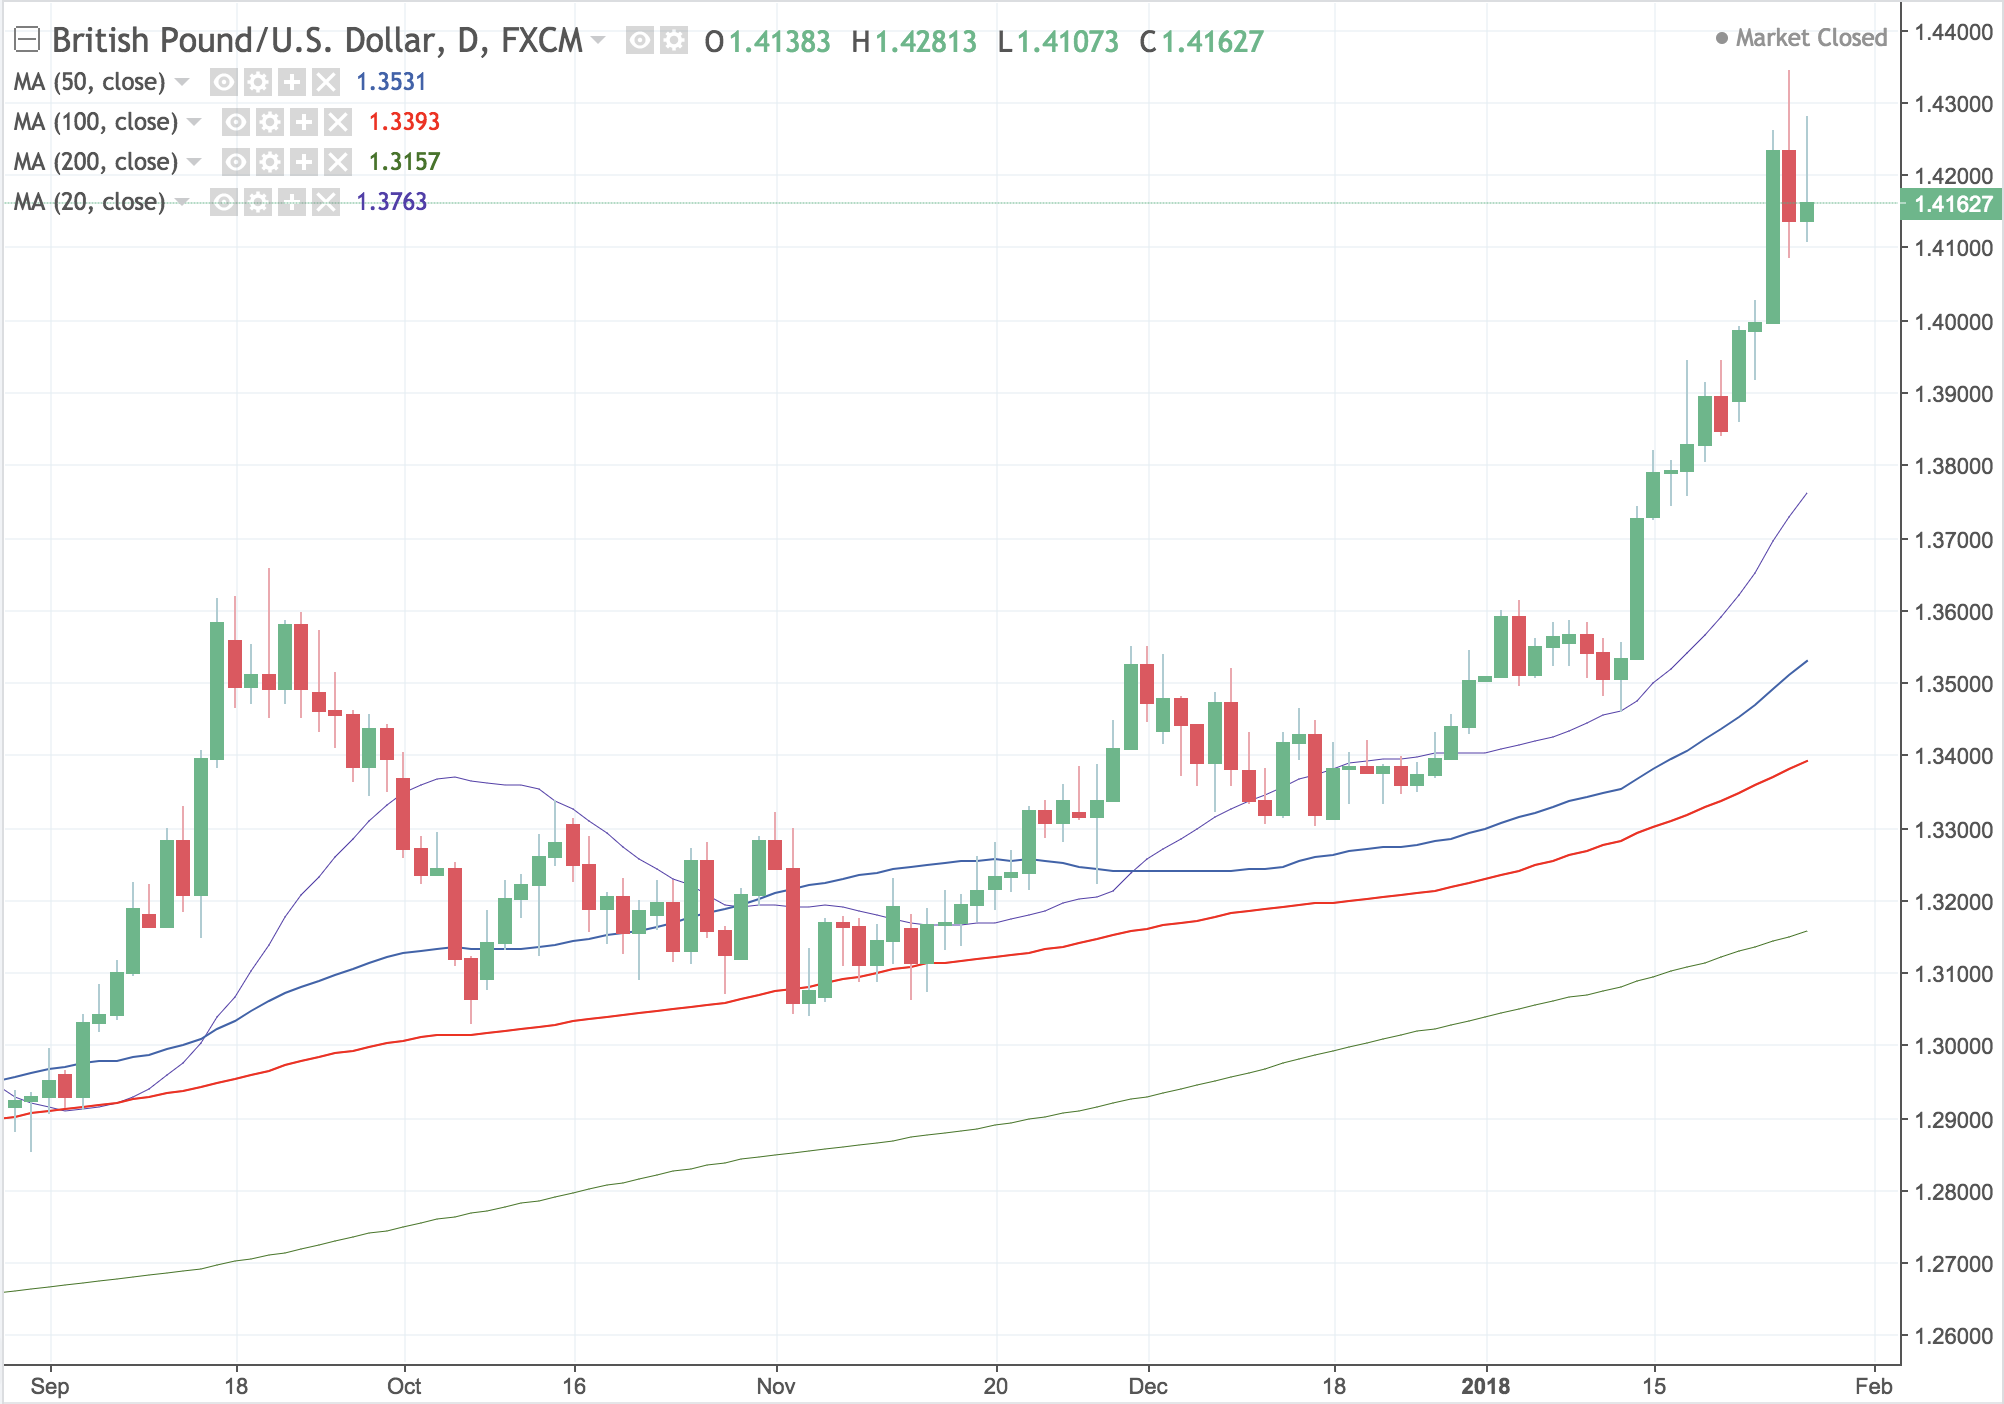 Is GBP/USD About to Peak?